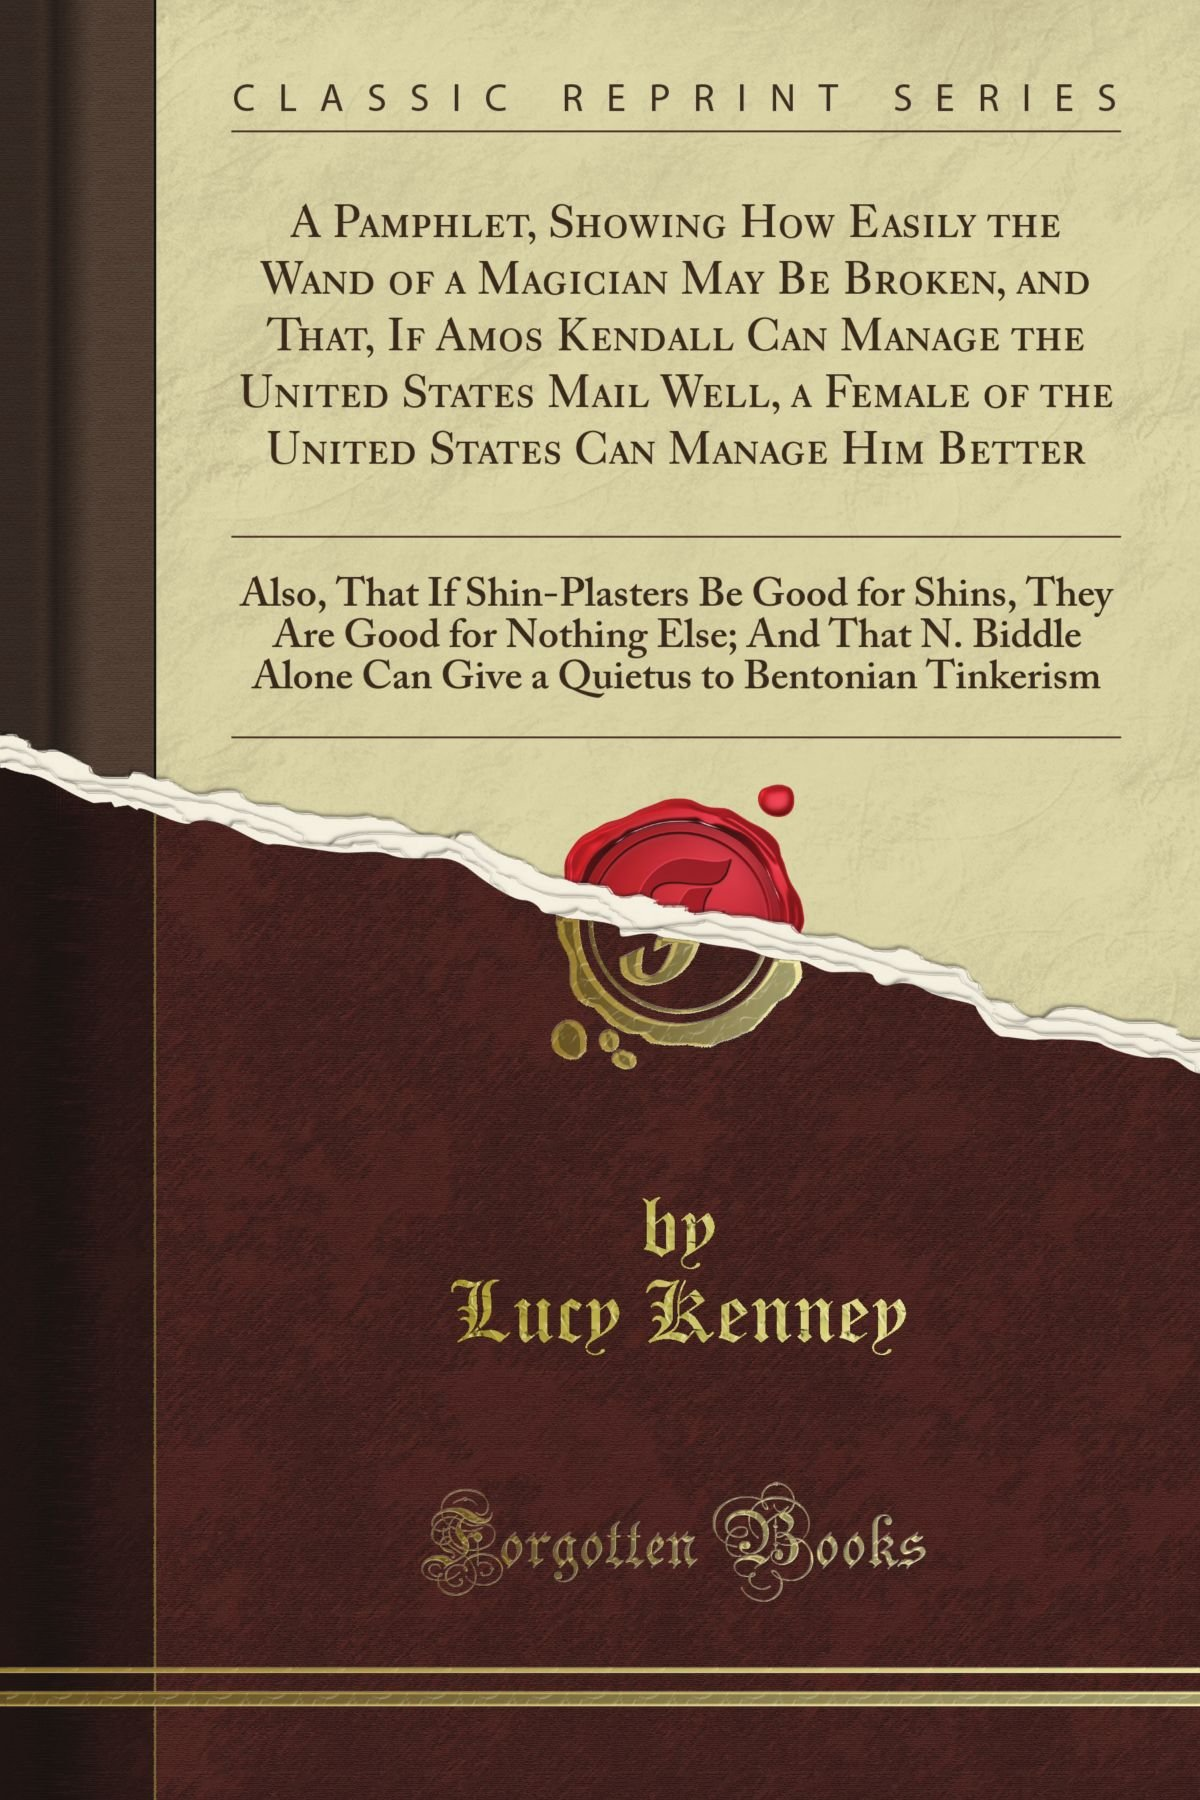 A Pamphlet, Showing How Easily the Wand of a Magician May Be Broken, and That, If Amos Kendall Can Manage the United States Mail Well, a Female of the ... Can Manage Him Better (Classic Reprint) pdf